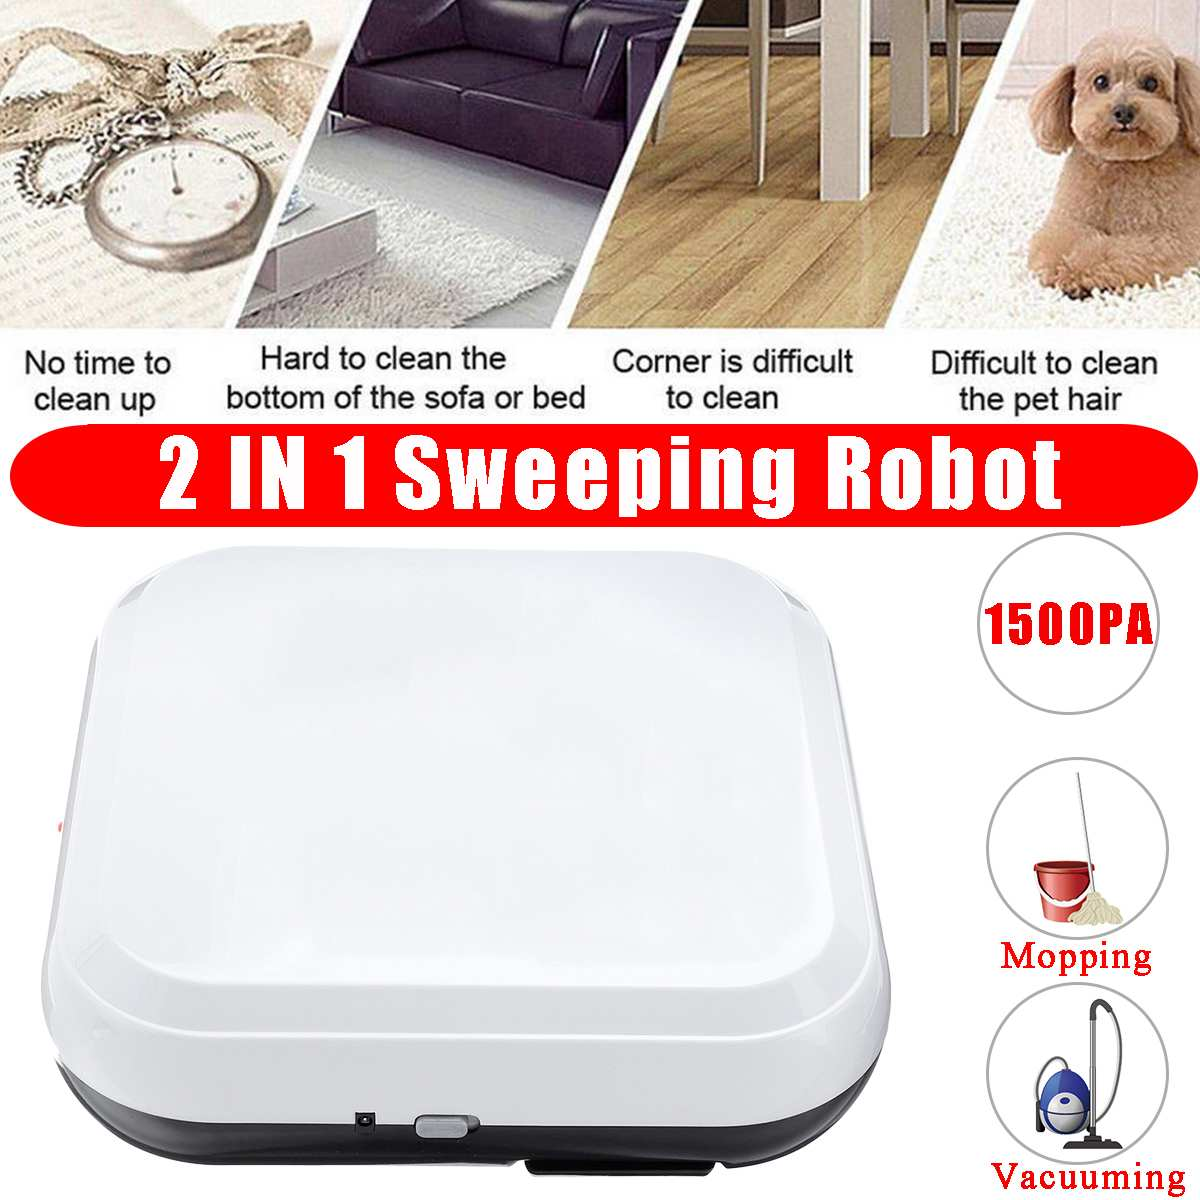 1500pa Multifunctional Robot Vacuum Cleaner 2-In-1 Automatic Smart Home Sweeping Robot Mini Cleaning Machine